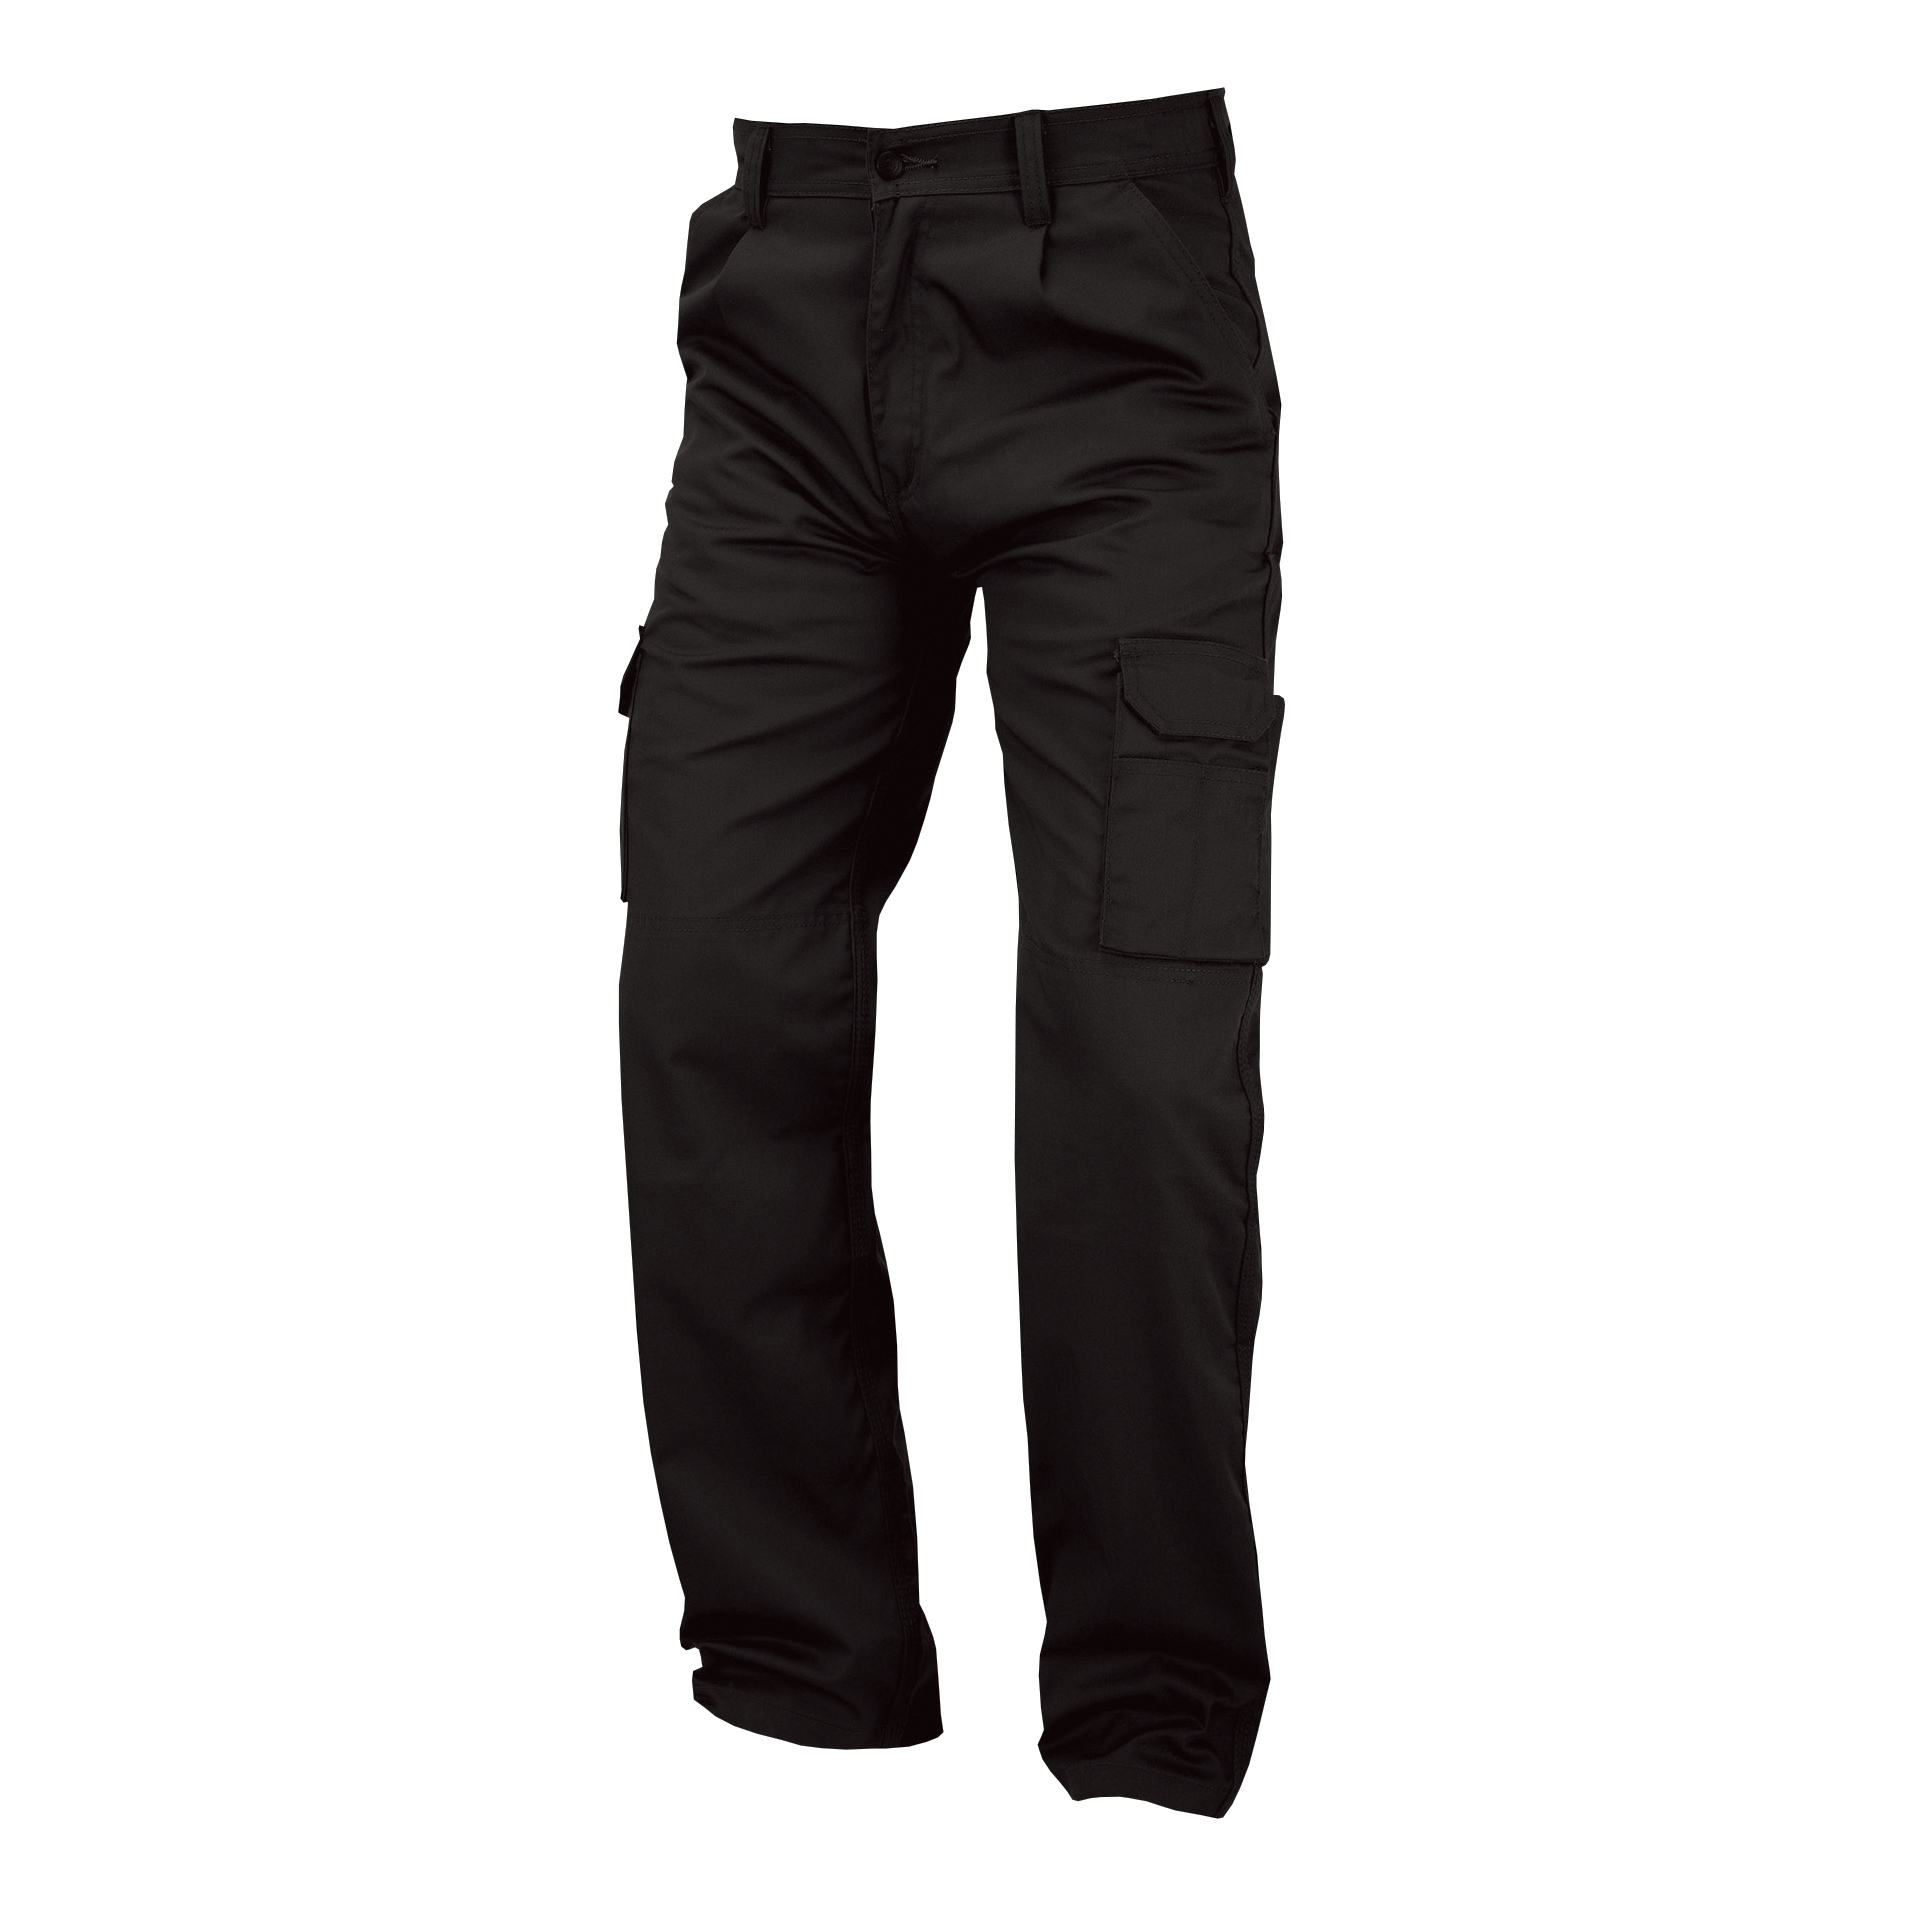 Combat Trouser Multi-functional Waist 44in Leg 29in Black Ref PCTHWBL44S *Approx 3 Day Leadtime*